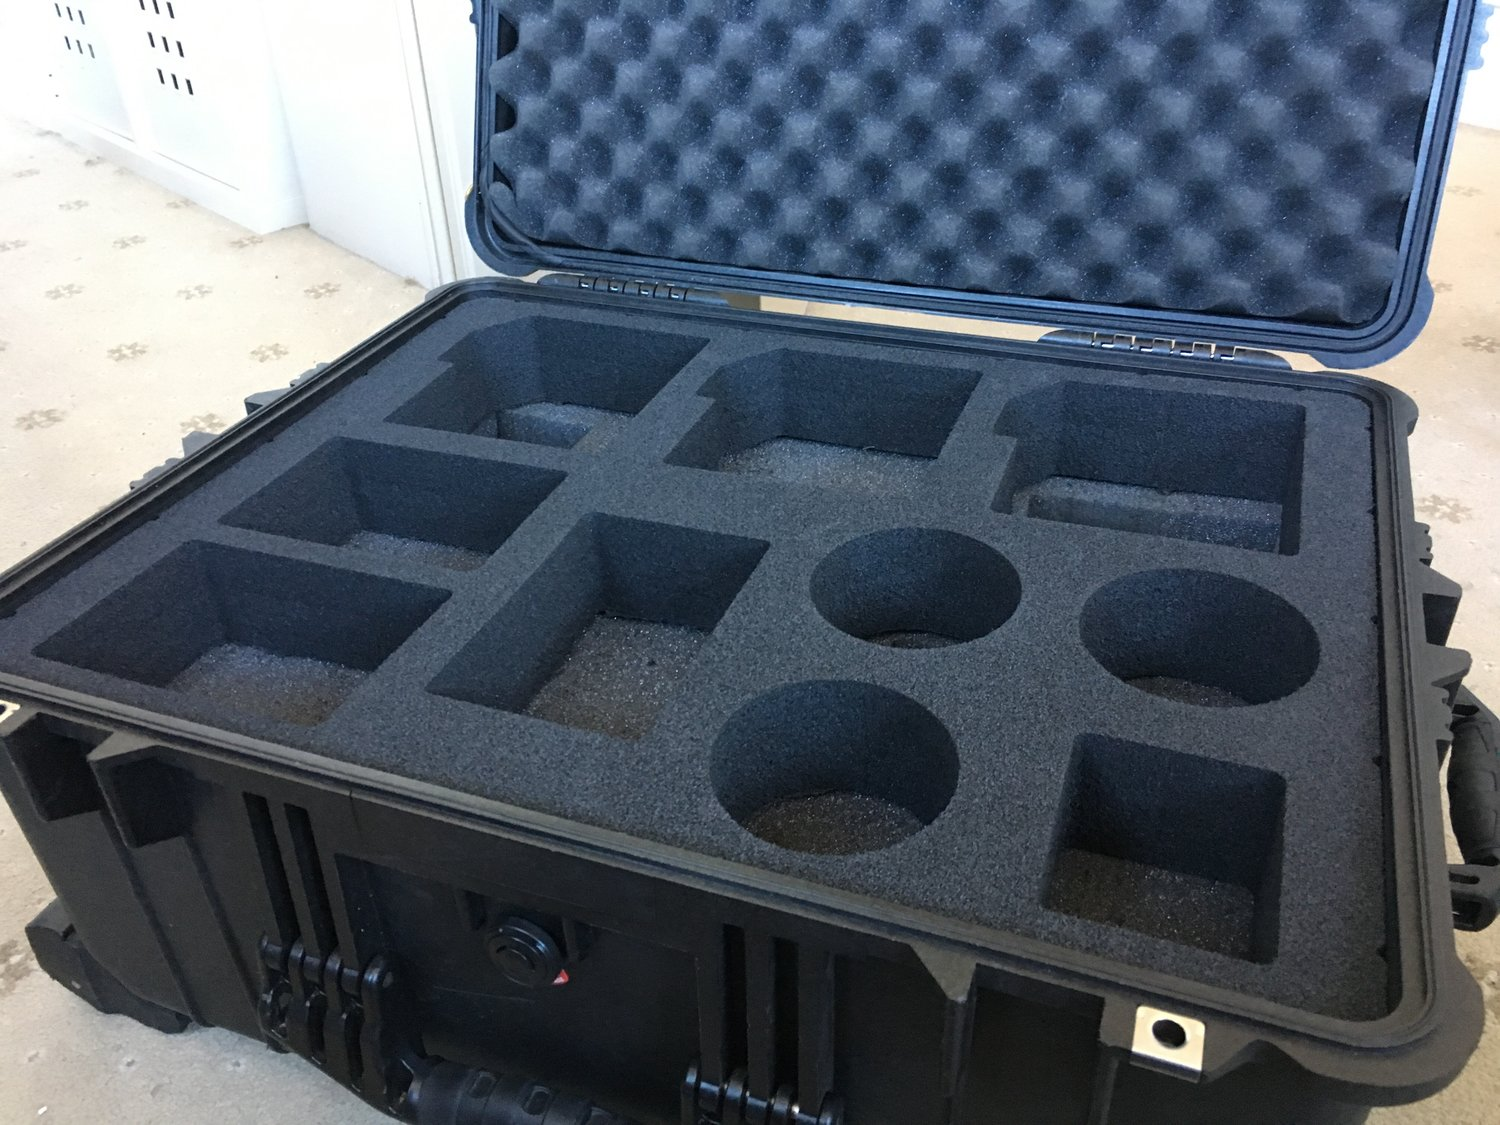 soft foam case insert - Soft polyethylene foam equipment case inserts. Custom machined to fit cameras, firearms and other sensitive equipment .